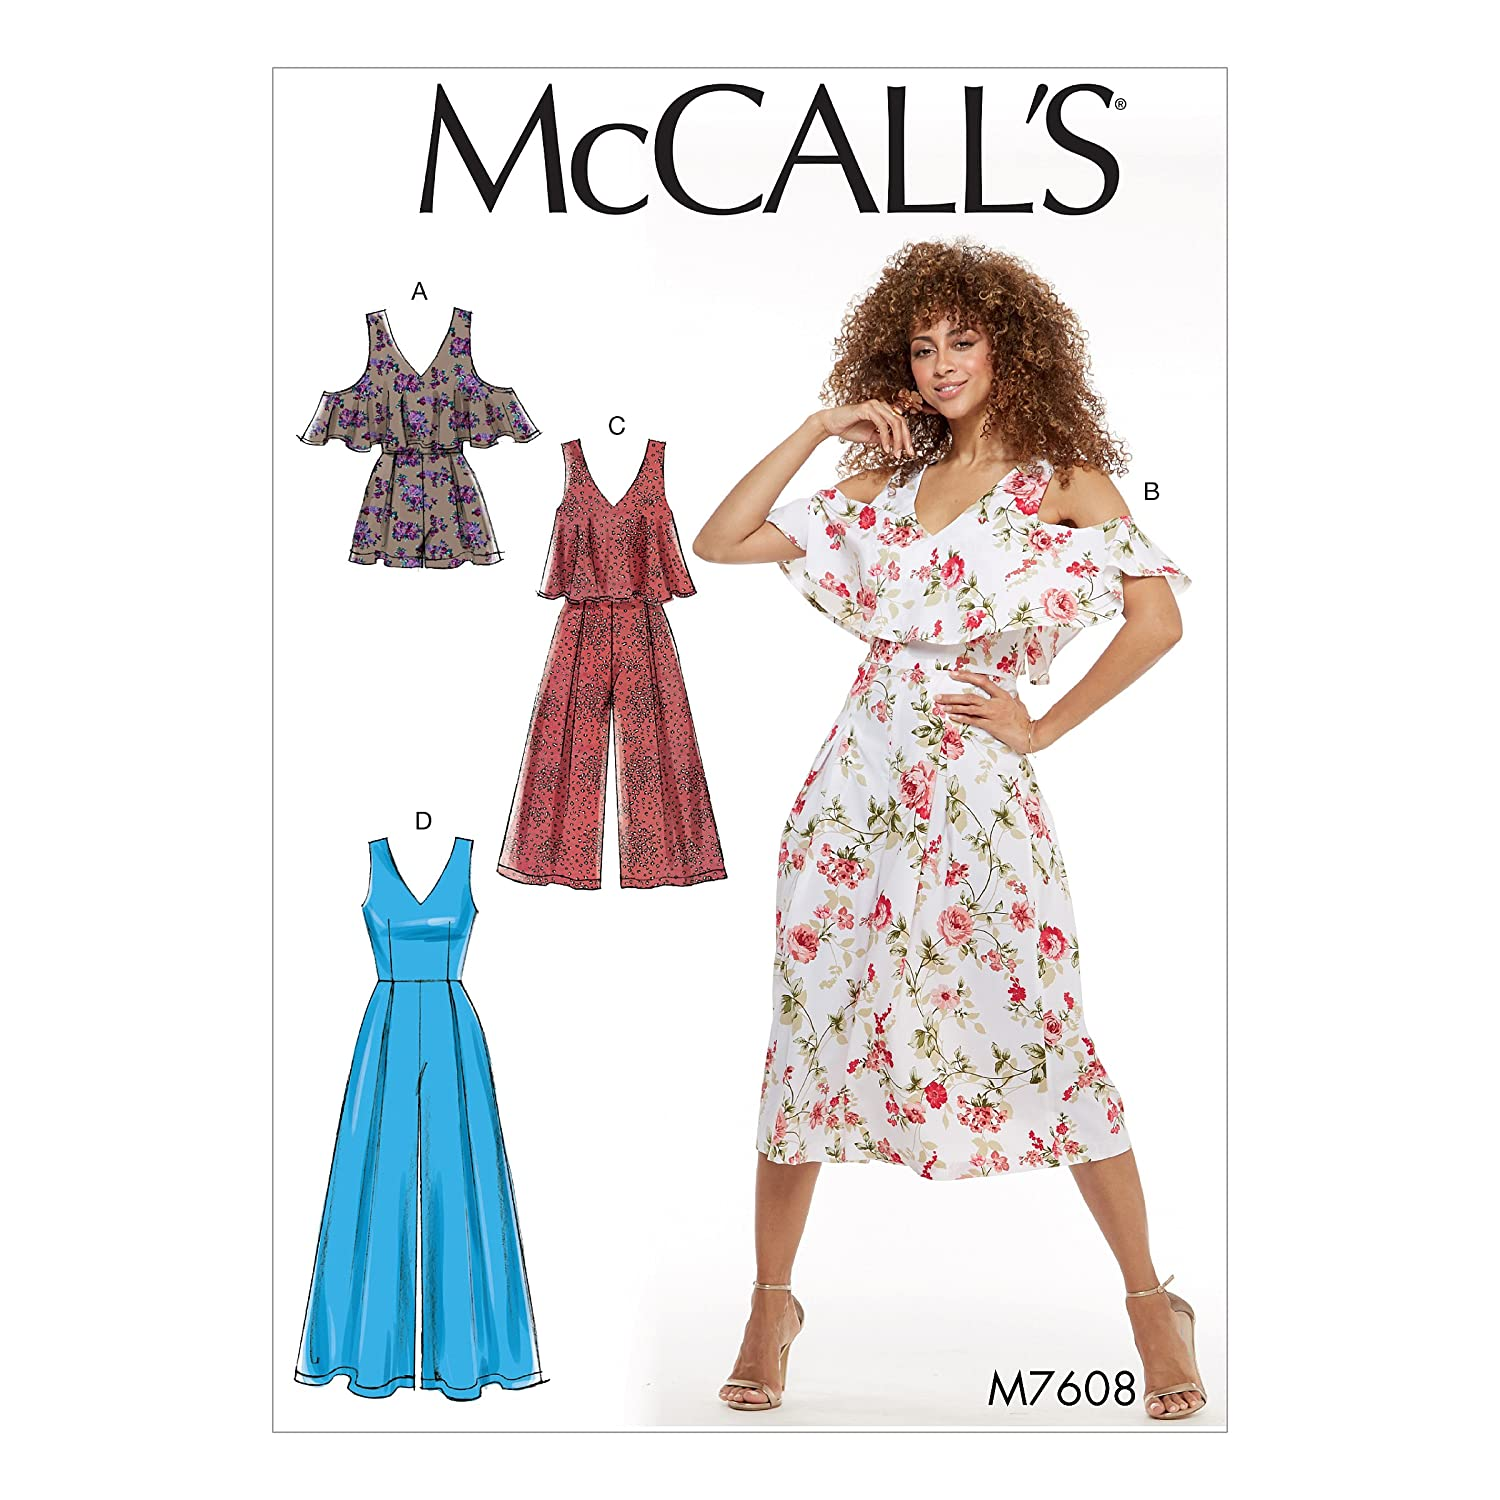 76805ab84fa Amazon.com  MCCALLS M7608 Misses  V-Neck Lined Sleeveless Romper and  Jumpsuits (SIZE 6-14) SEWING PATTERN  Arts